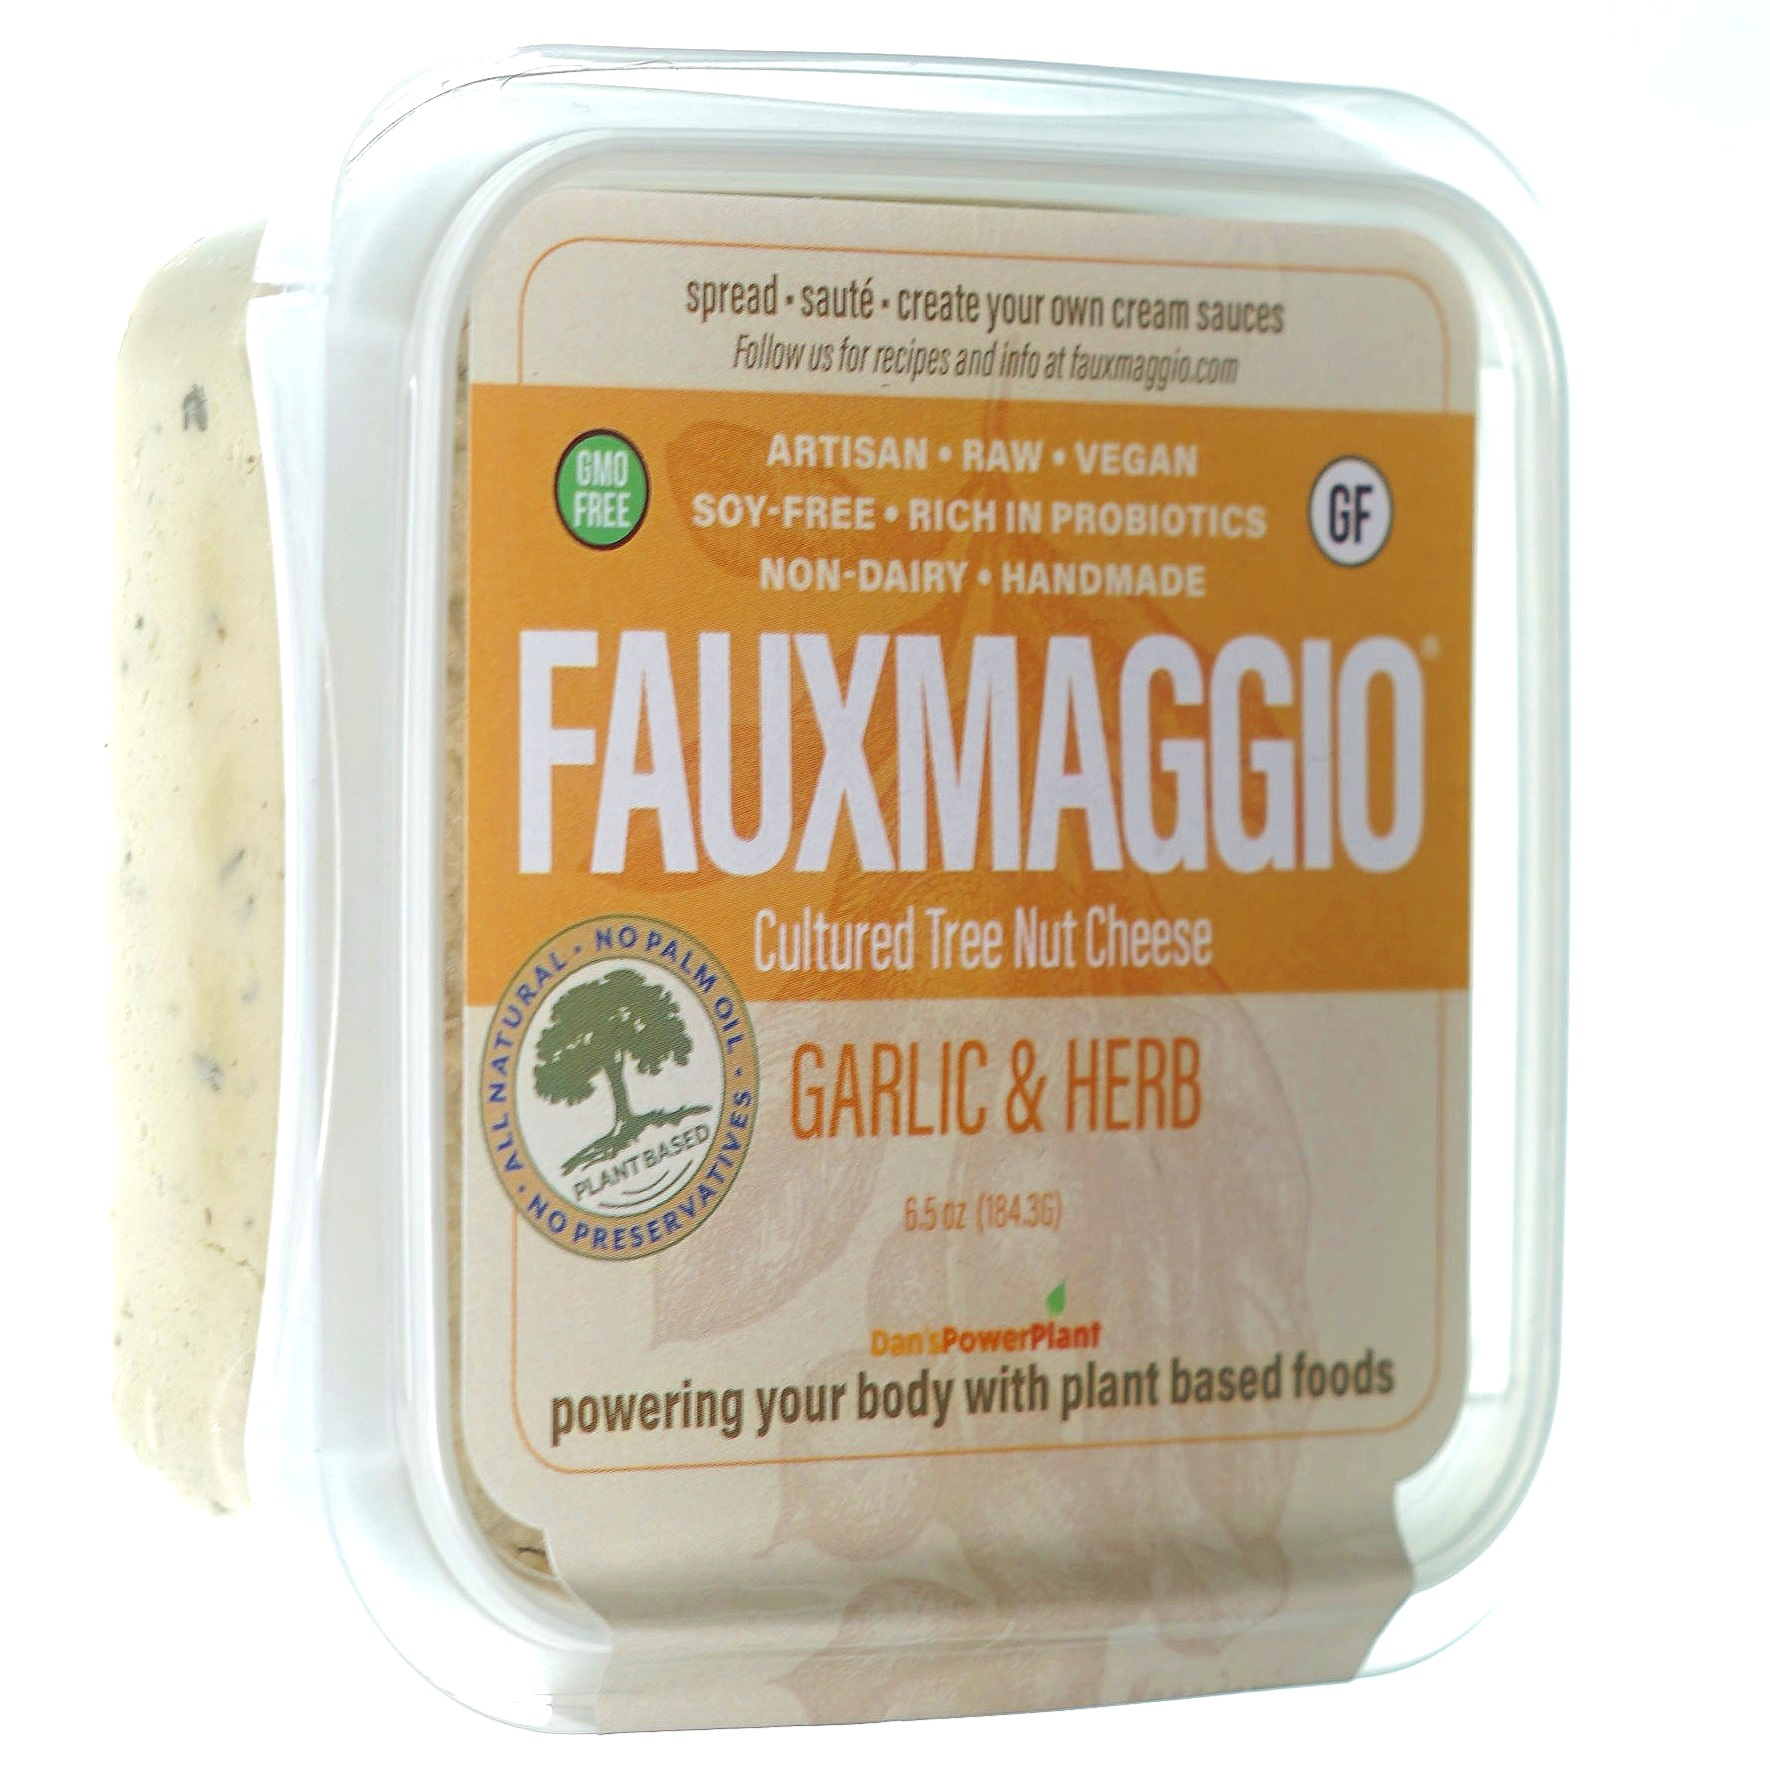 Garlic & Herb - This vegan cheese, produced with carefully crafted and cultured cashews and macadamia nuts flavored with a classic blend of basil, oregano, marjoram, thyme and rainbow peppercorns.Ingredients: Cashews, Organic Lemon Juice, Organic Olive Oil, Macadamia Nuts, Sea Salt, Organic Roasted Garlic, Vinegar, Nutritional Yeast, Basil, Oregano, Marjora, Thyme, Rainbow Peppercorns.